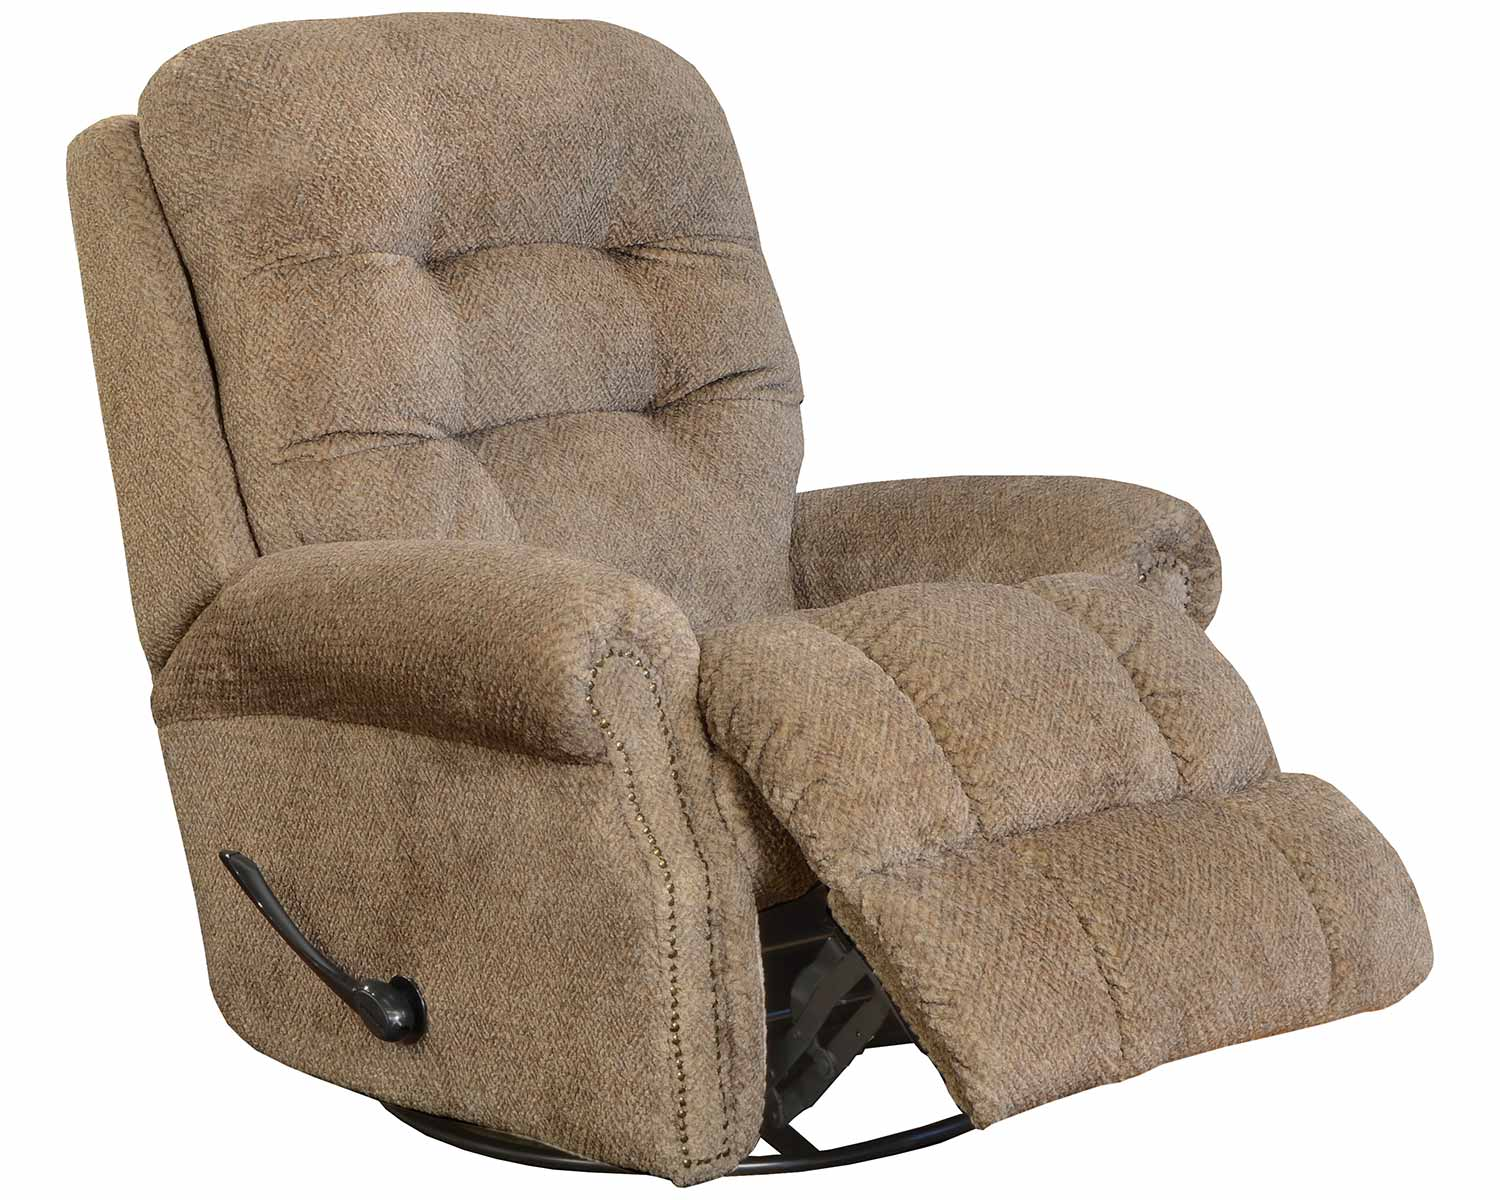 CatNapper Norwood Recliner Chair - Camel